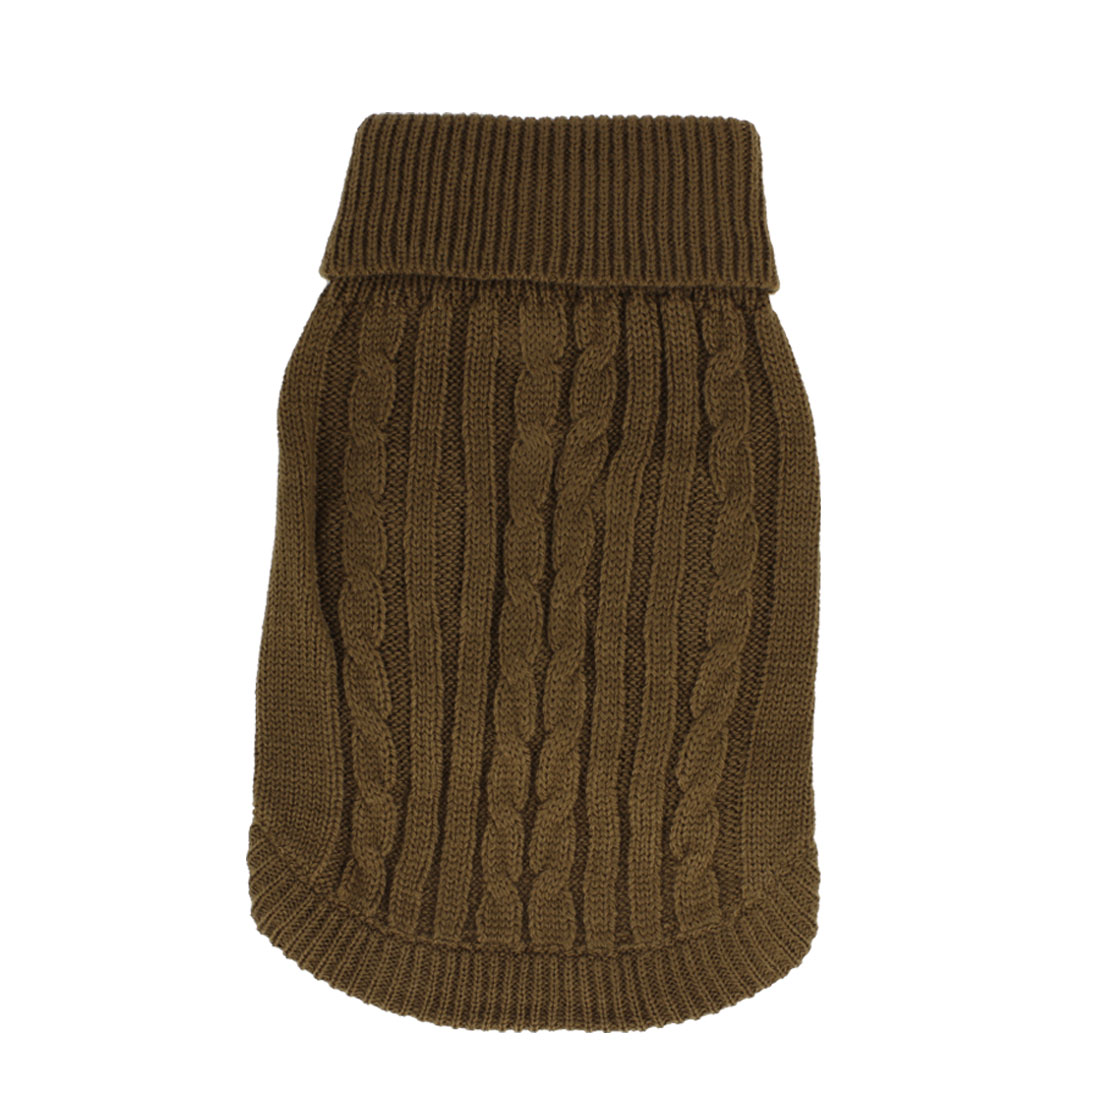 Pet Dog Doggy Ribbed Cuff Twisted Knitwear Turtleneck Apparel Sweater Coffee Color Size L